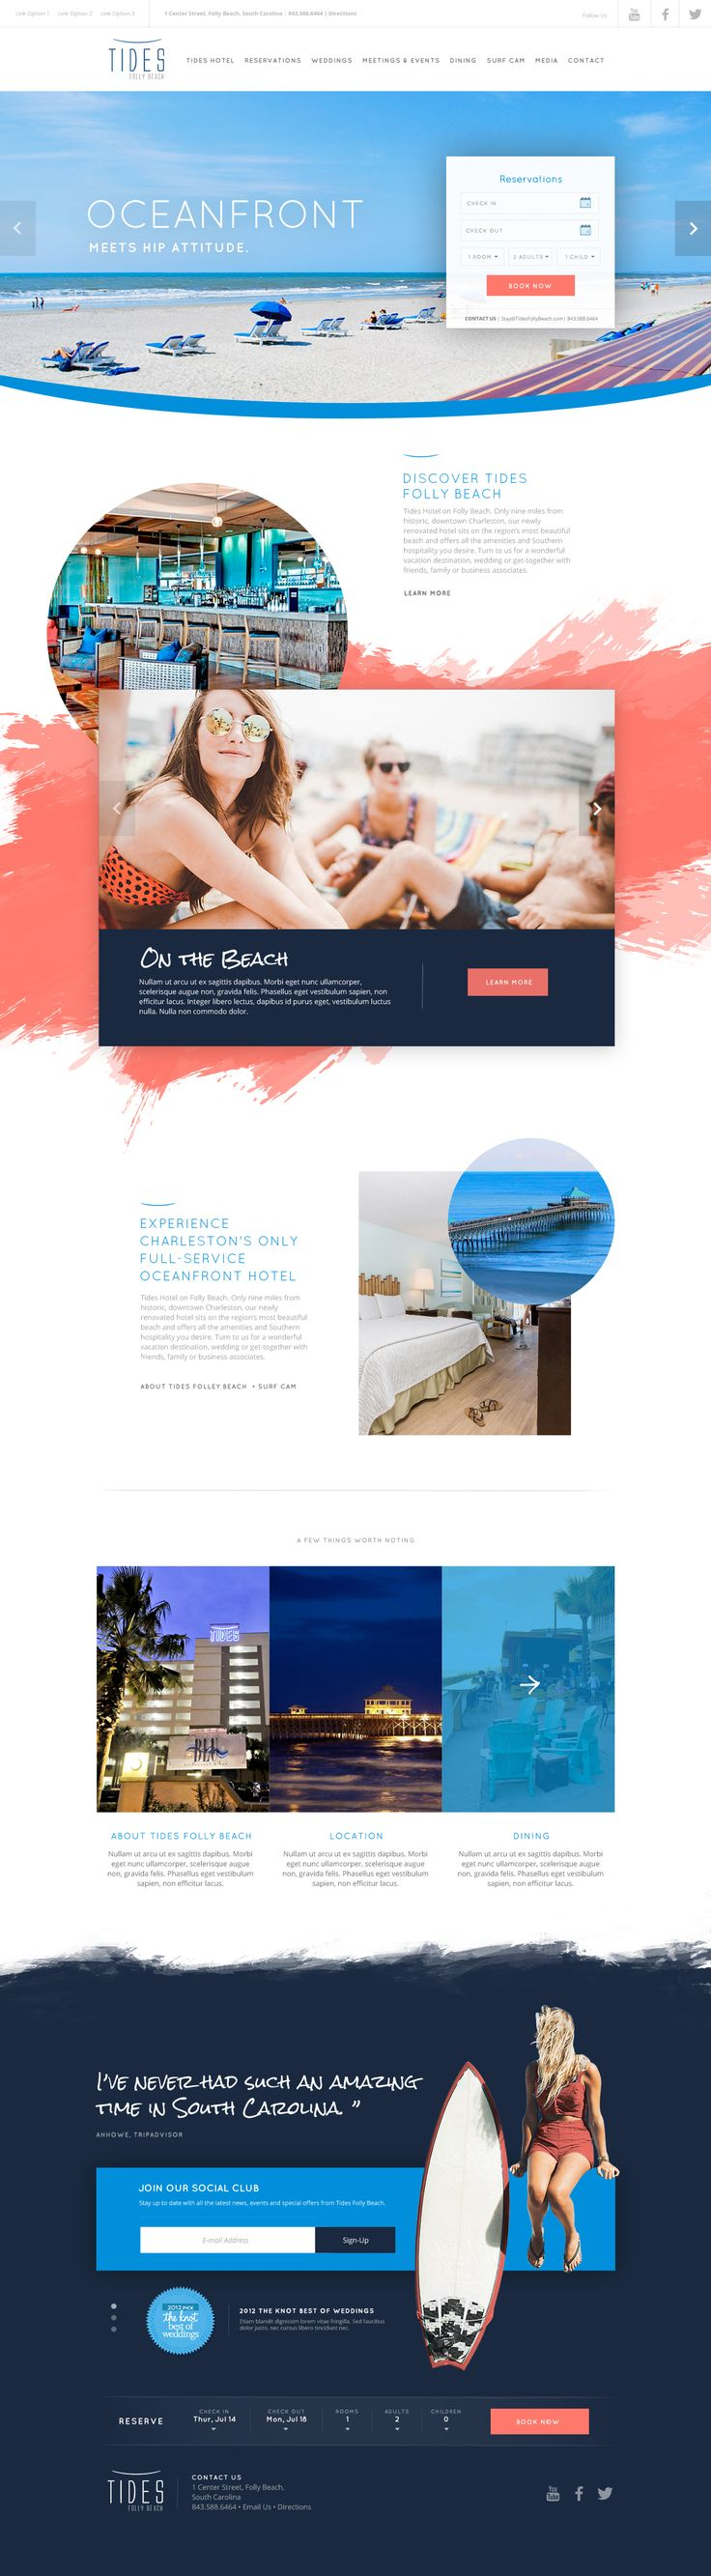 Tides Folly Beach Hotel & Resort Website Design by Agency Dominion